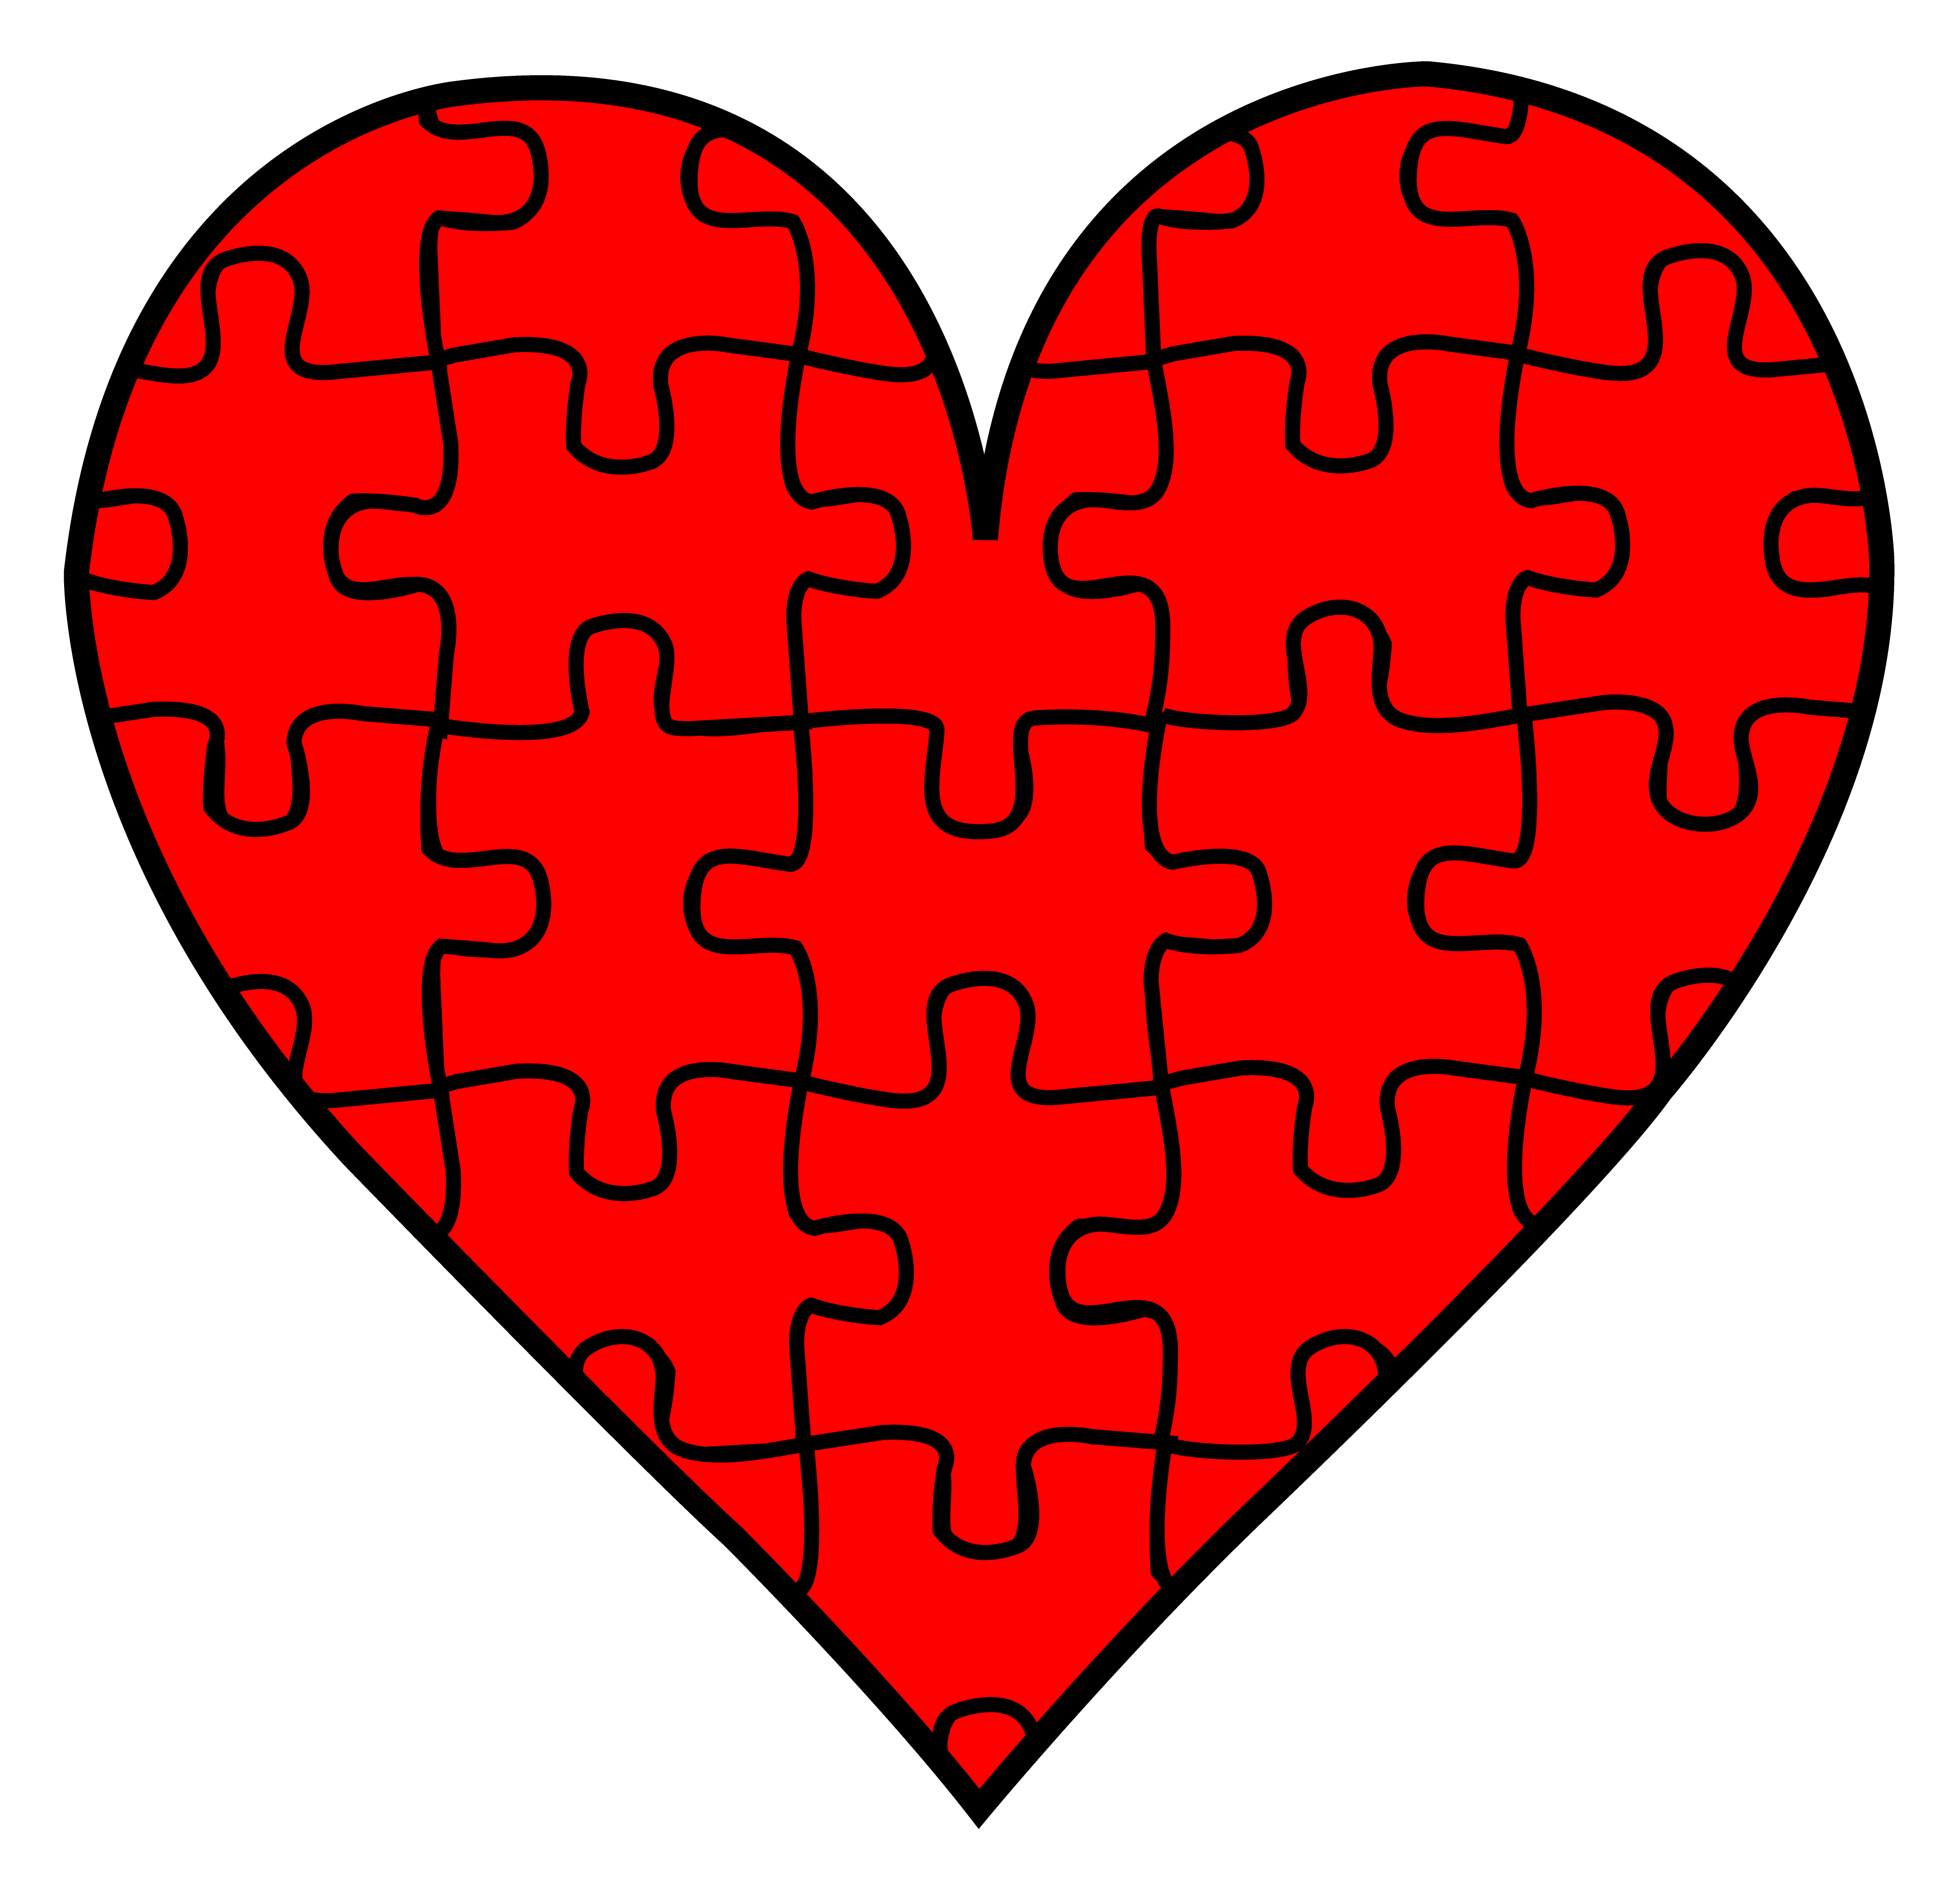 Heart puzzle clipart svg free download Heart Puzzle Piece Clipart svg free download